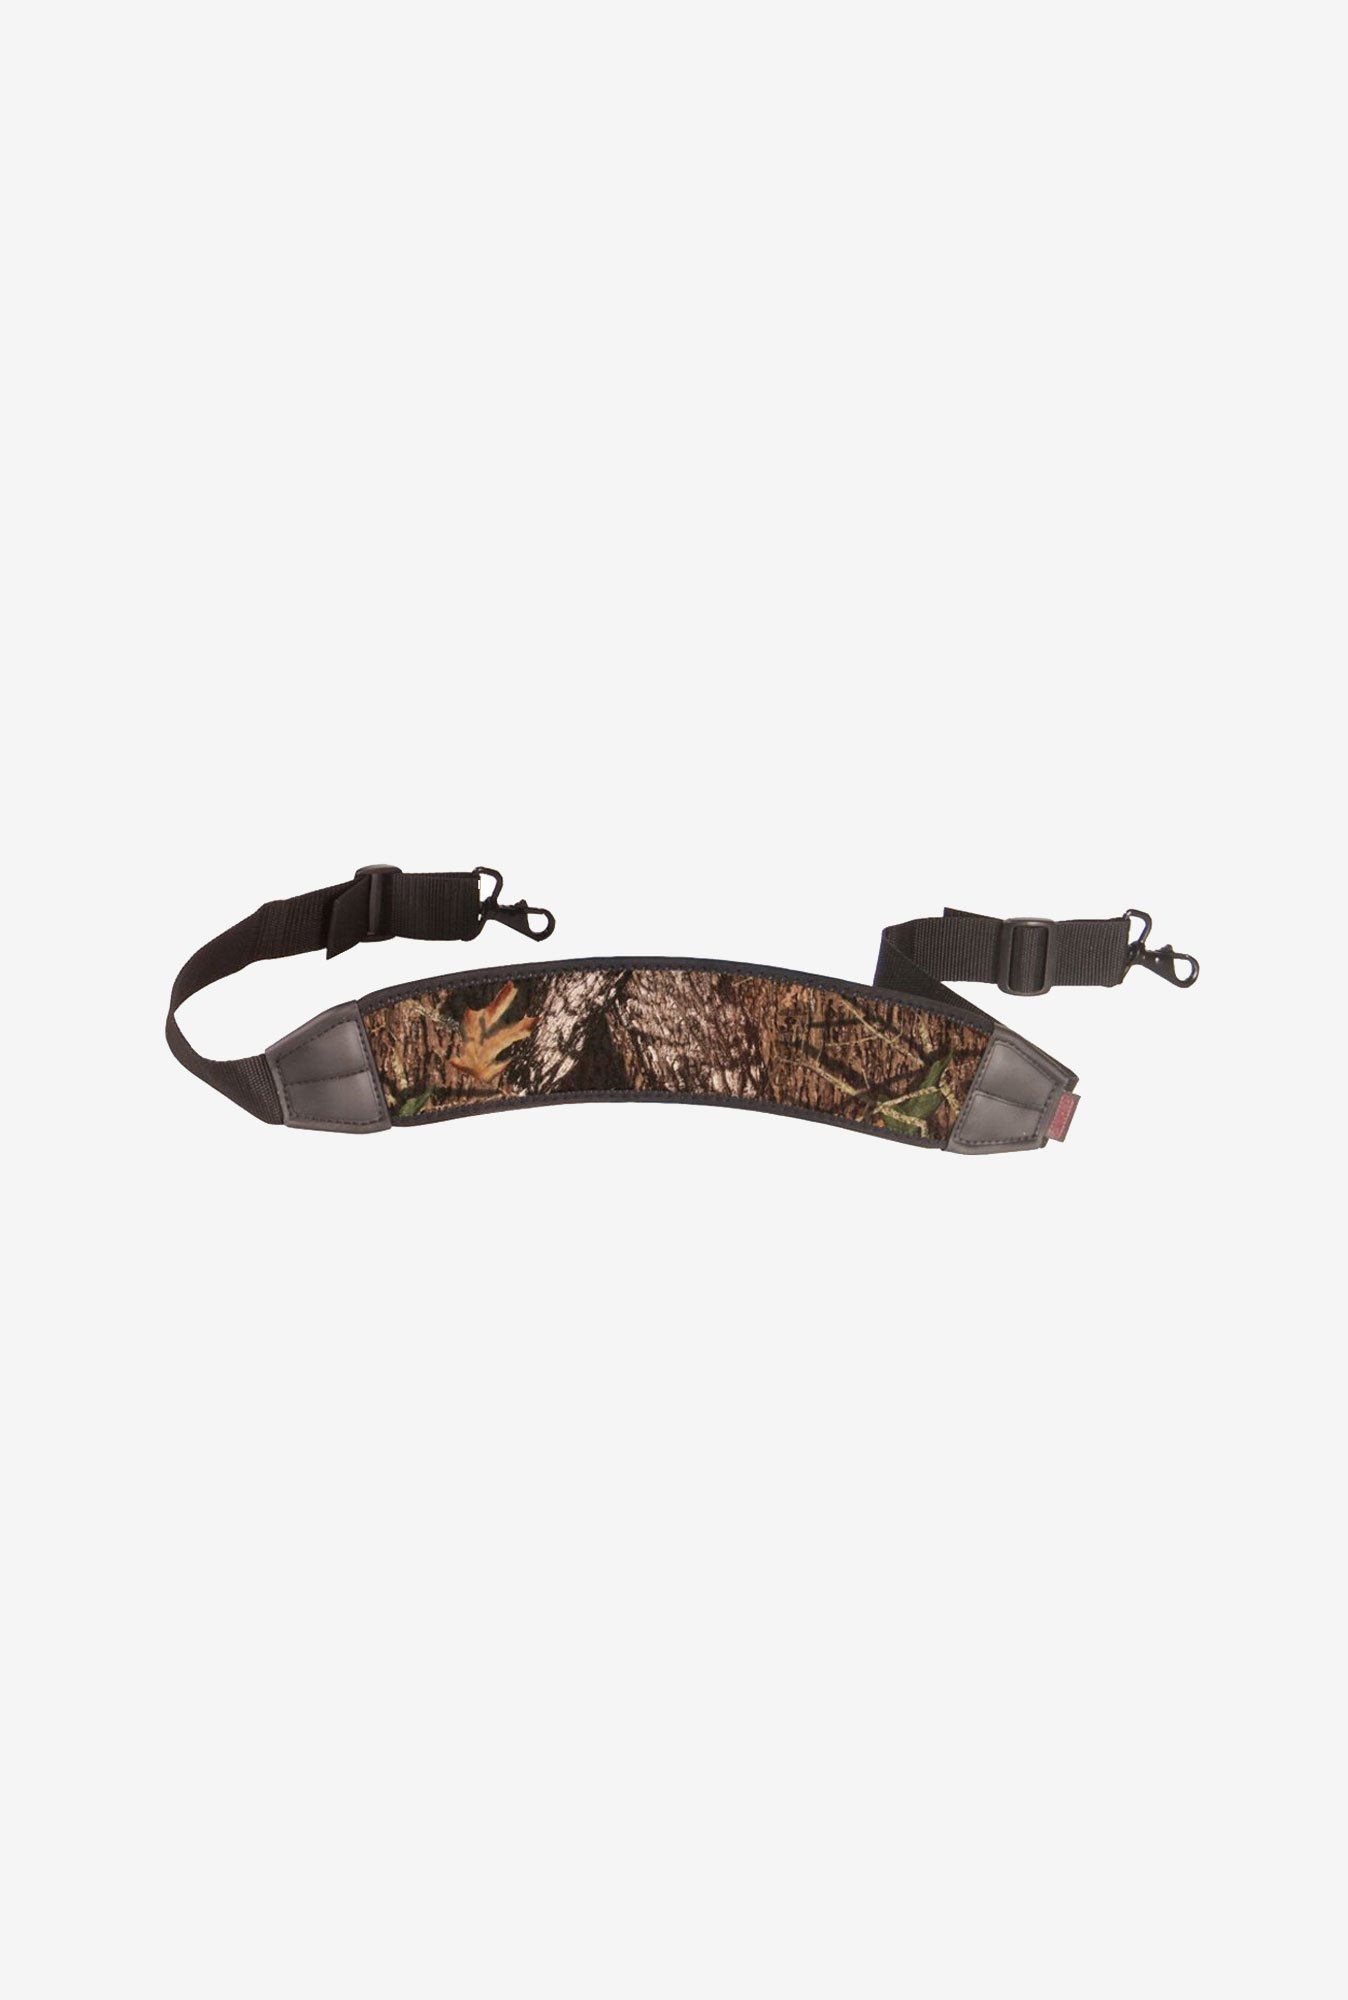 Op/Tech Usa 0910312 S.O.S. Curve Strap (Nature)